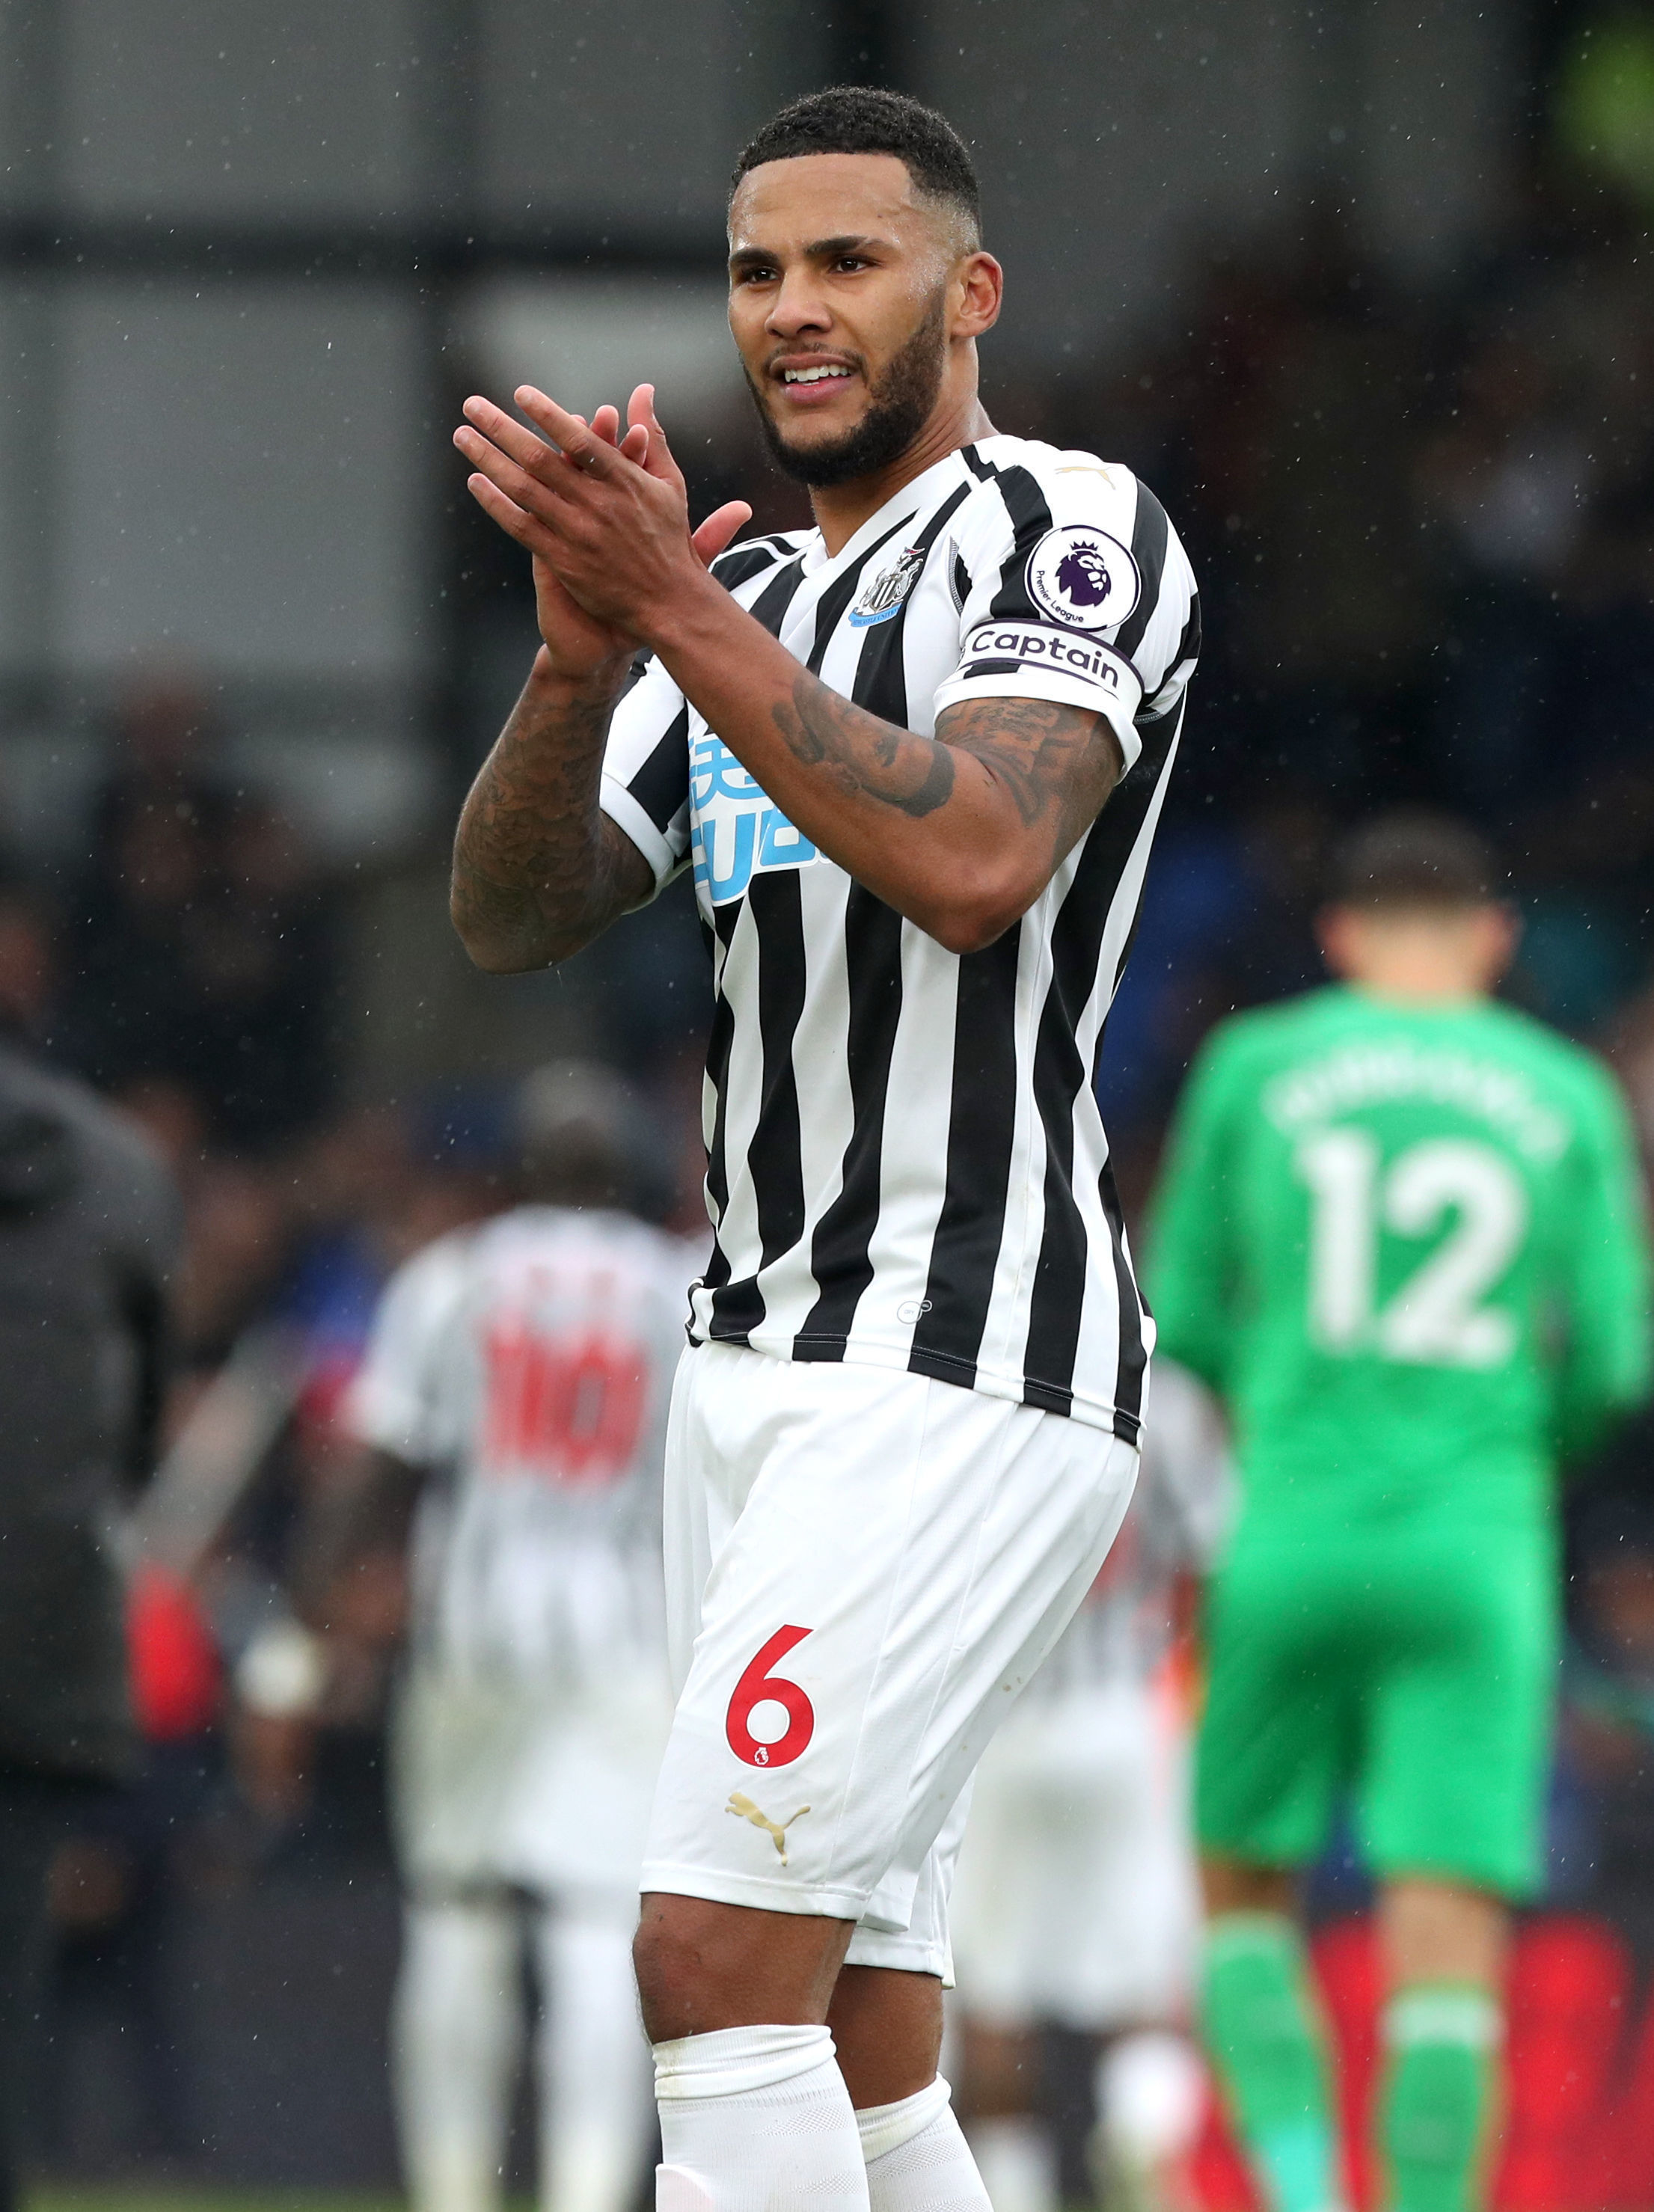 SHOW OF APPRECIATION: Jamaal Lascelles applauds the Newcastle fans in the wake of Saturday's goalless draw at Crystal Palace (Picture: JONATHAN BRADY/PA WIRE)